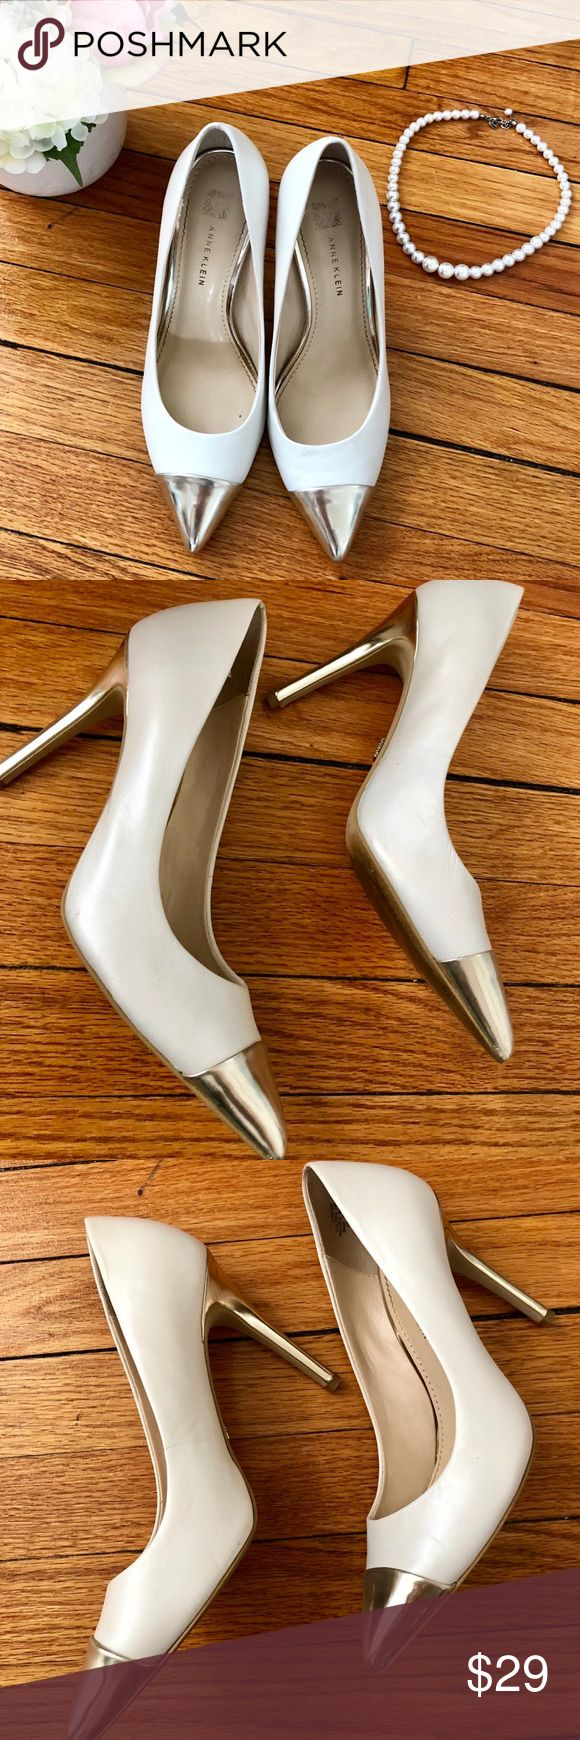 Anne Klein 7.0 White and Gold Heels Gently used white and gold heels - beautiful for a wedding or everyday wear!  A few minor scuffs noted in photos. Anne Klein Shoes Heels